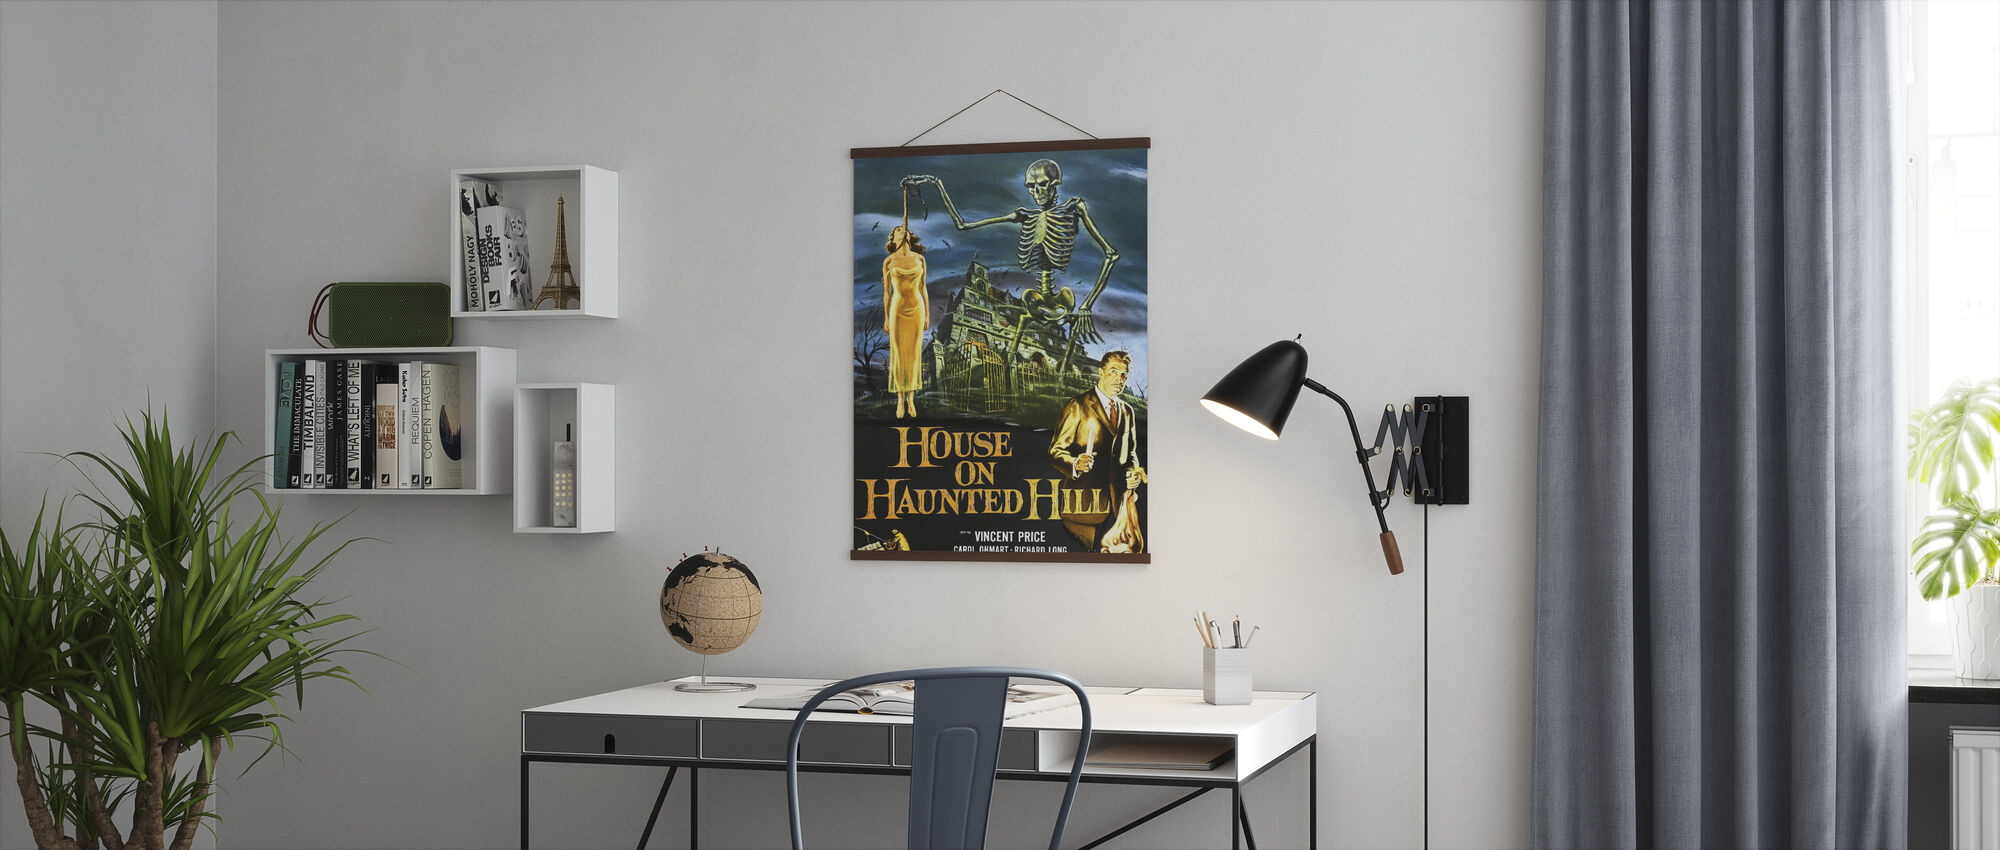 House on Haunted Hill - Poster - Office